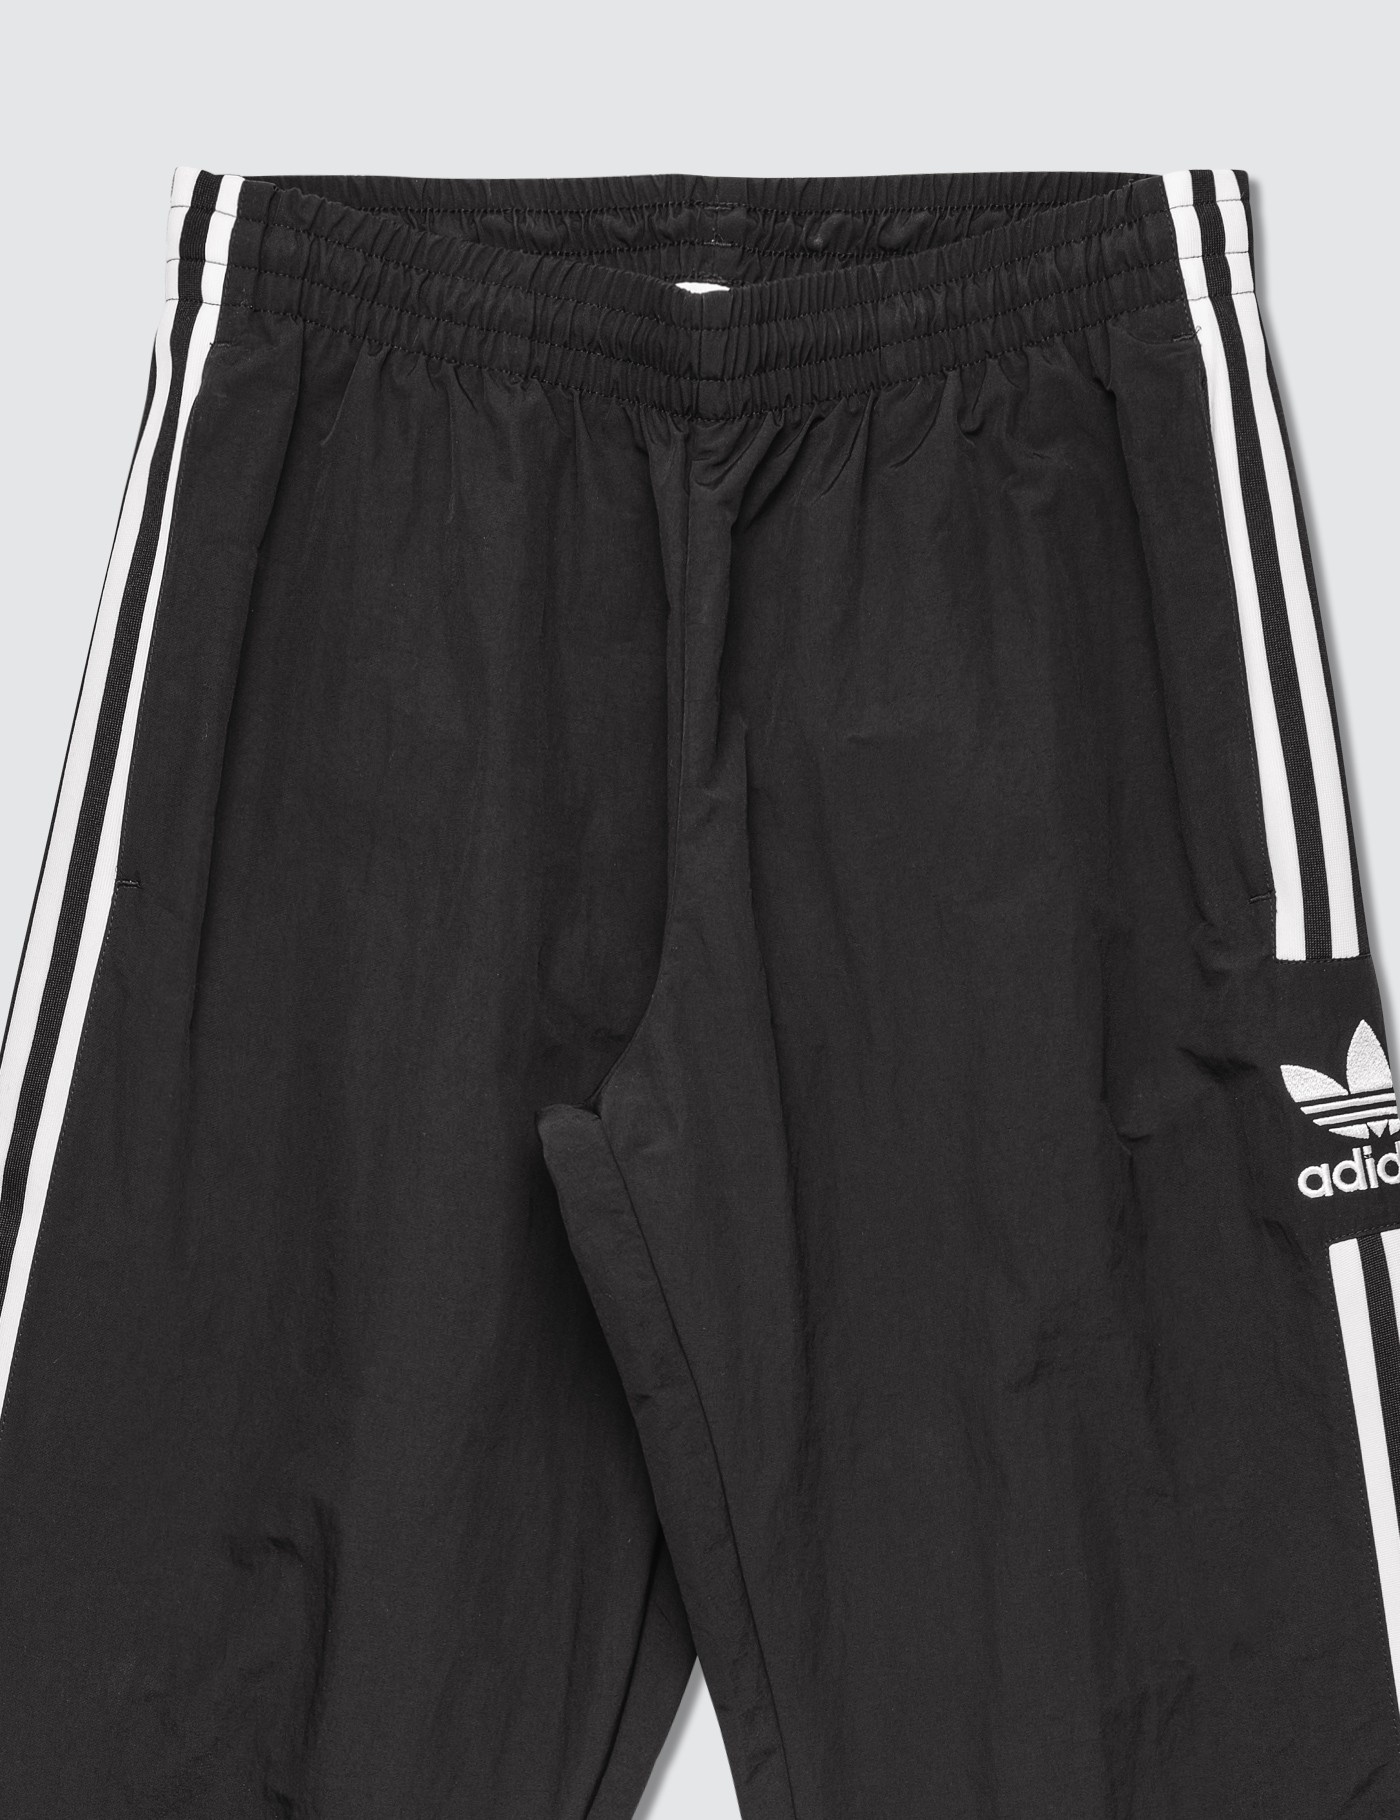 Adidas Originals Lock Up Track Pants